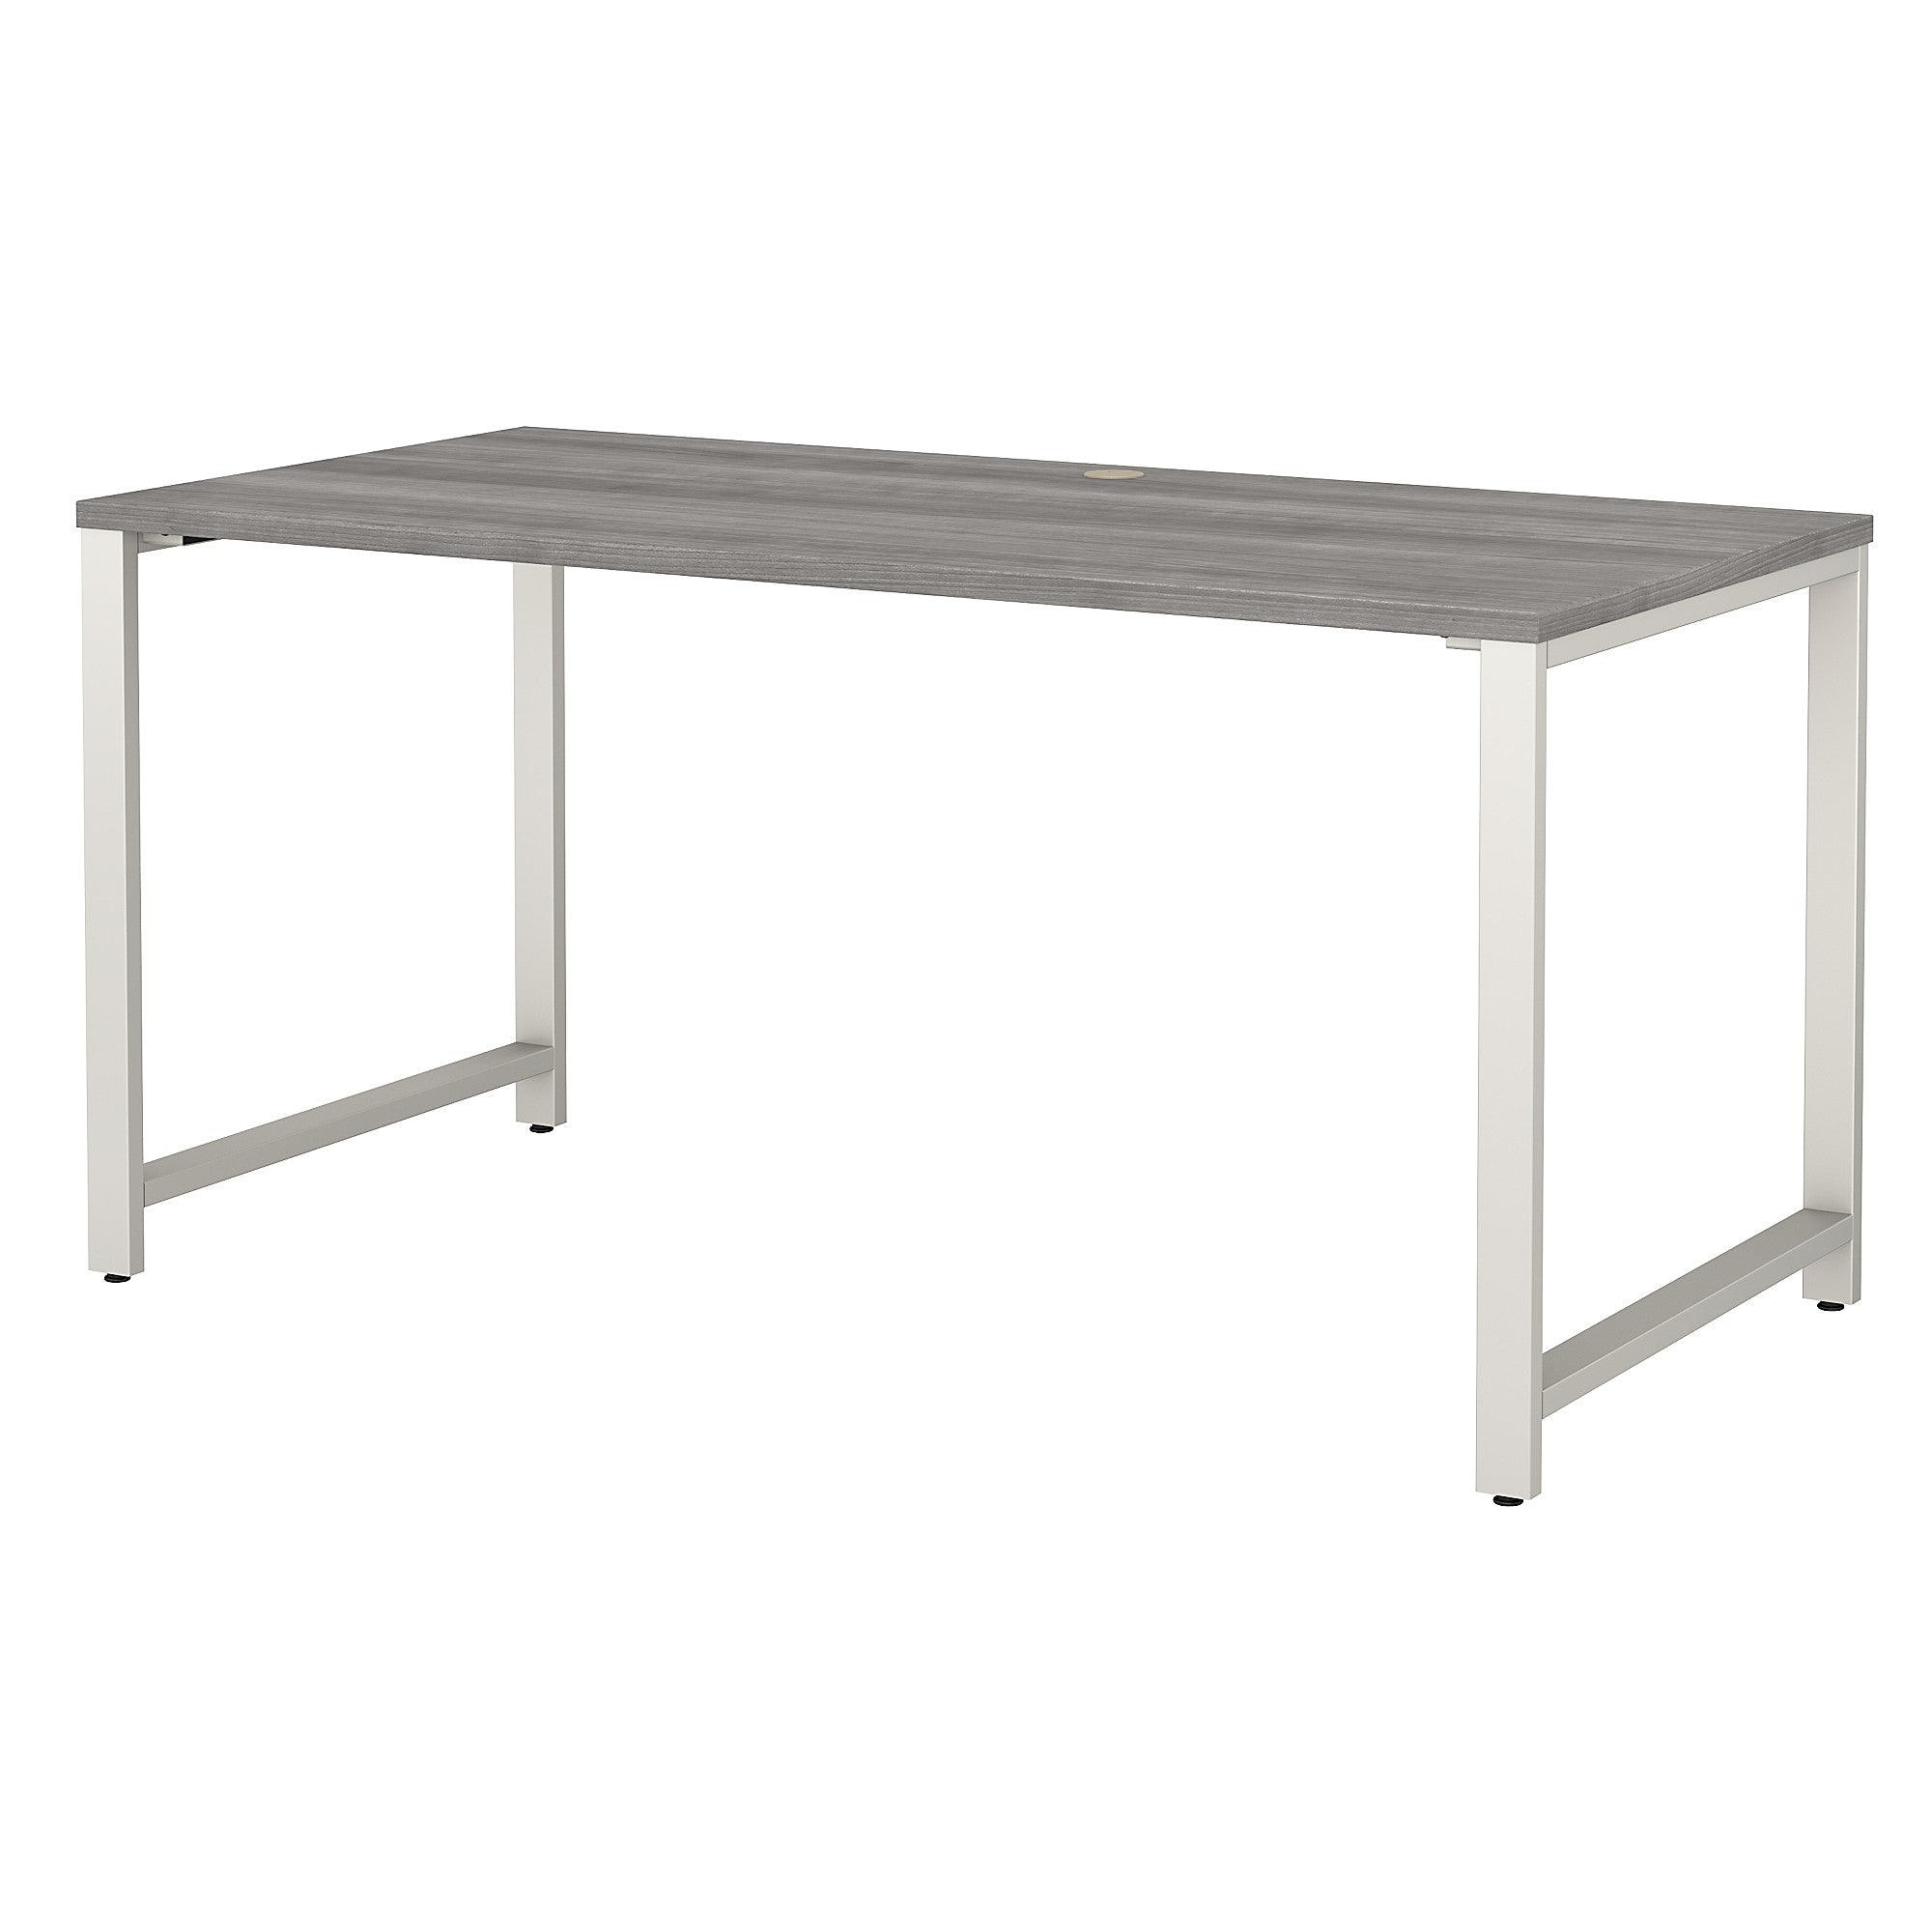 400 Series Table Desk with Metal Legs